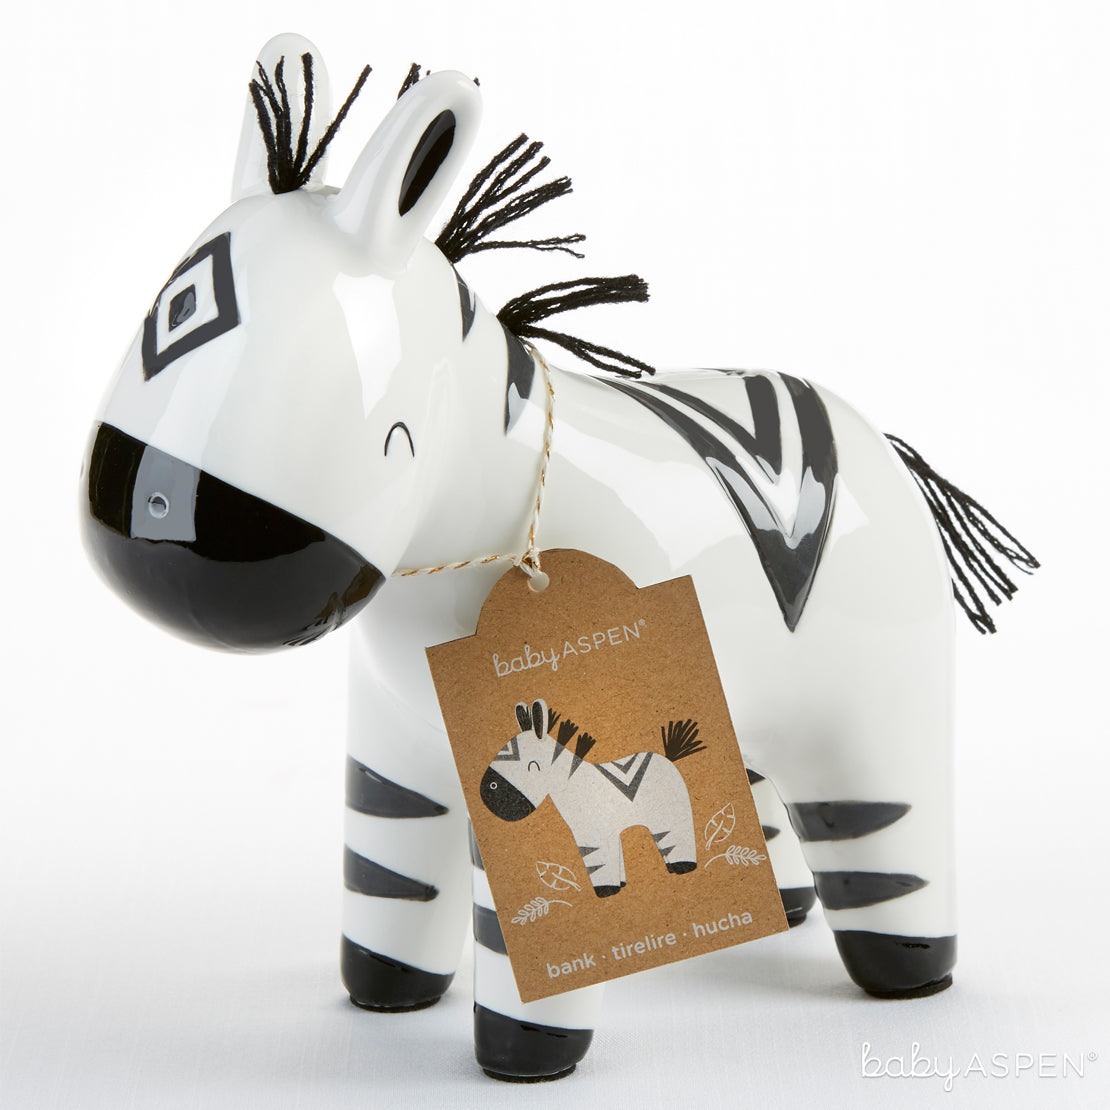 Zebra Bank | Go Wild With Safari Themed Baby Gifts | Baby Aspen